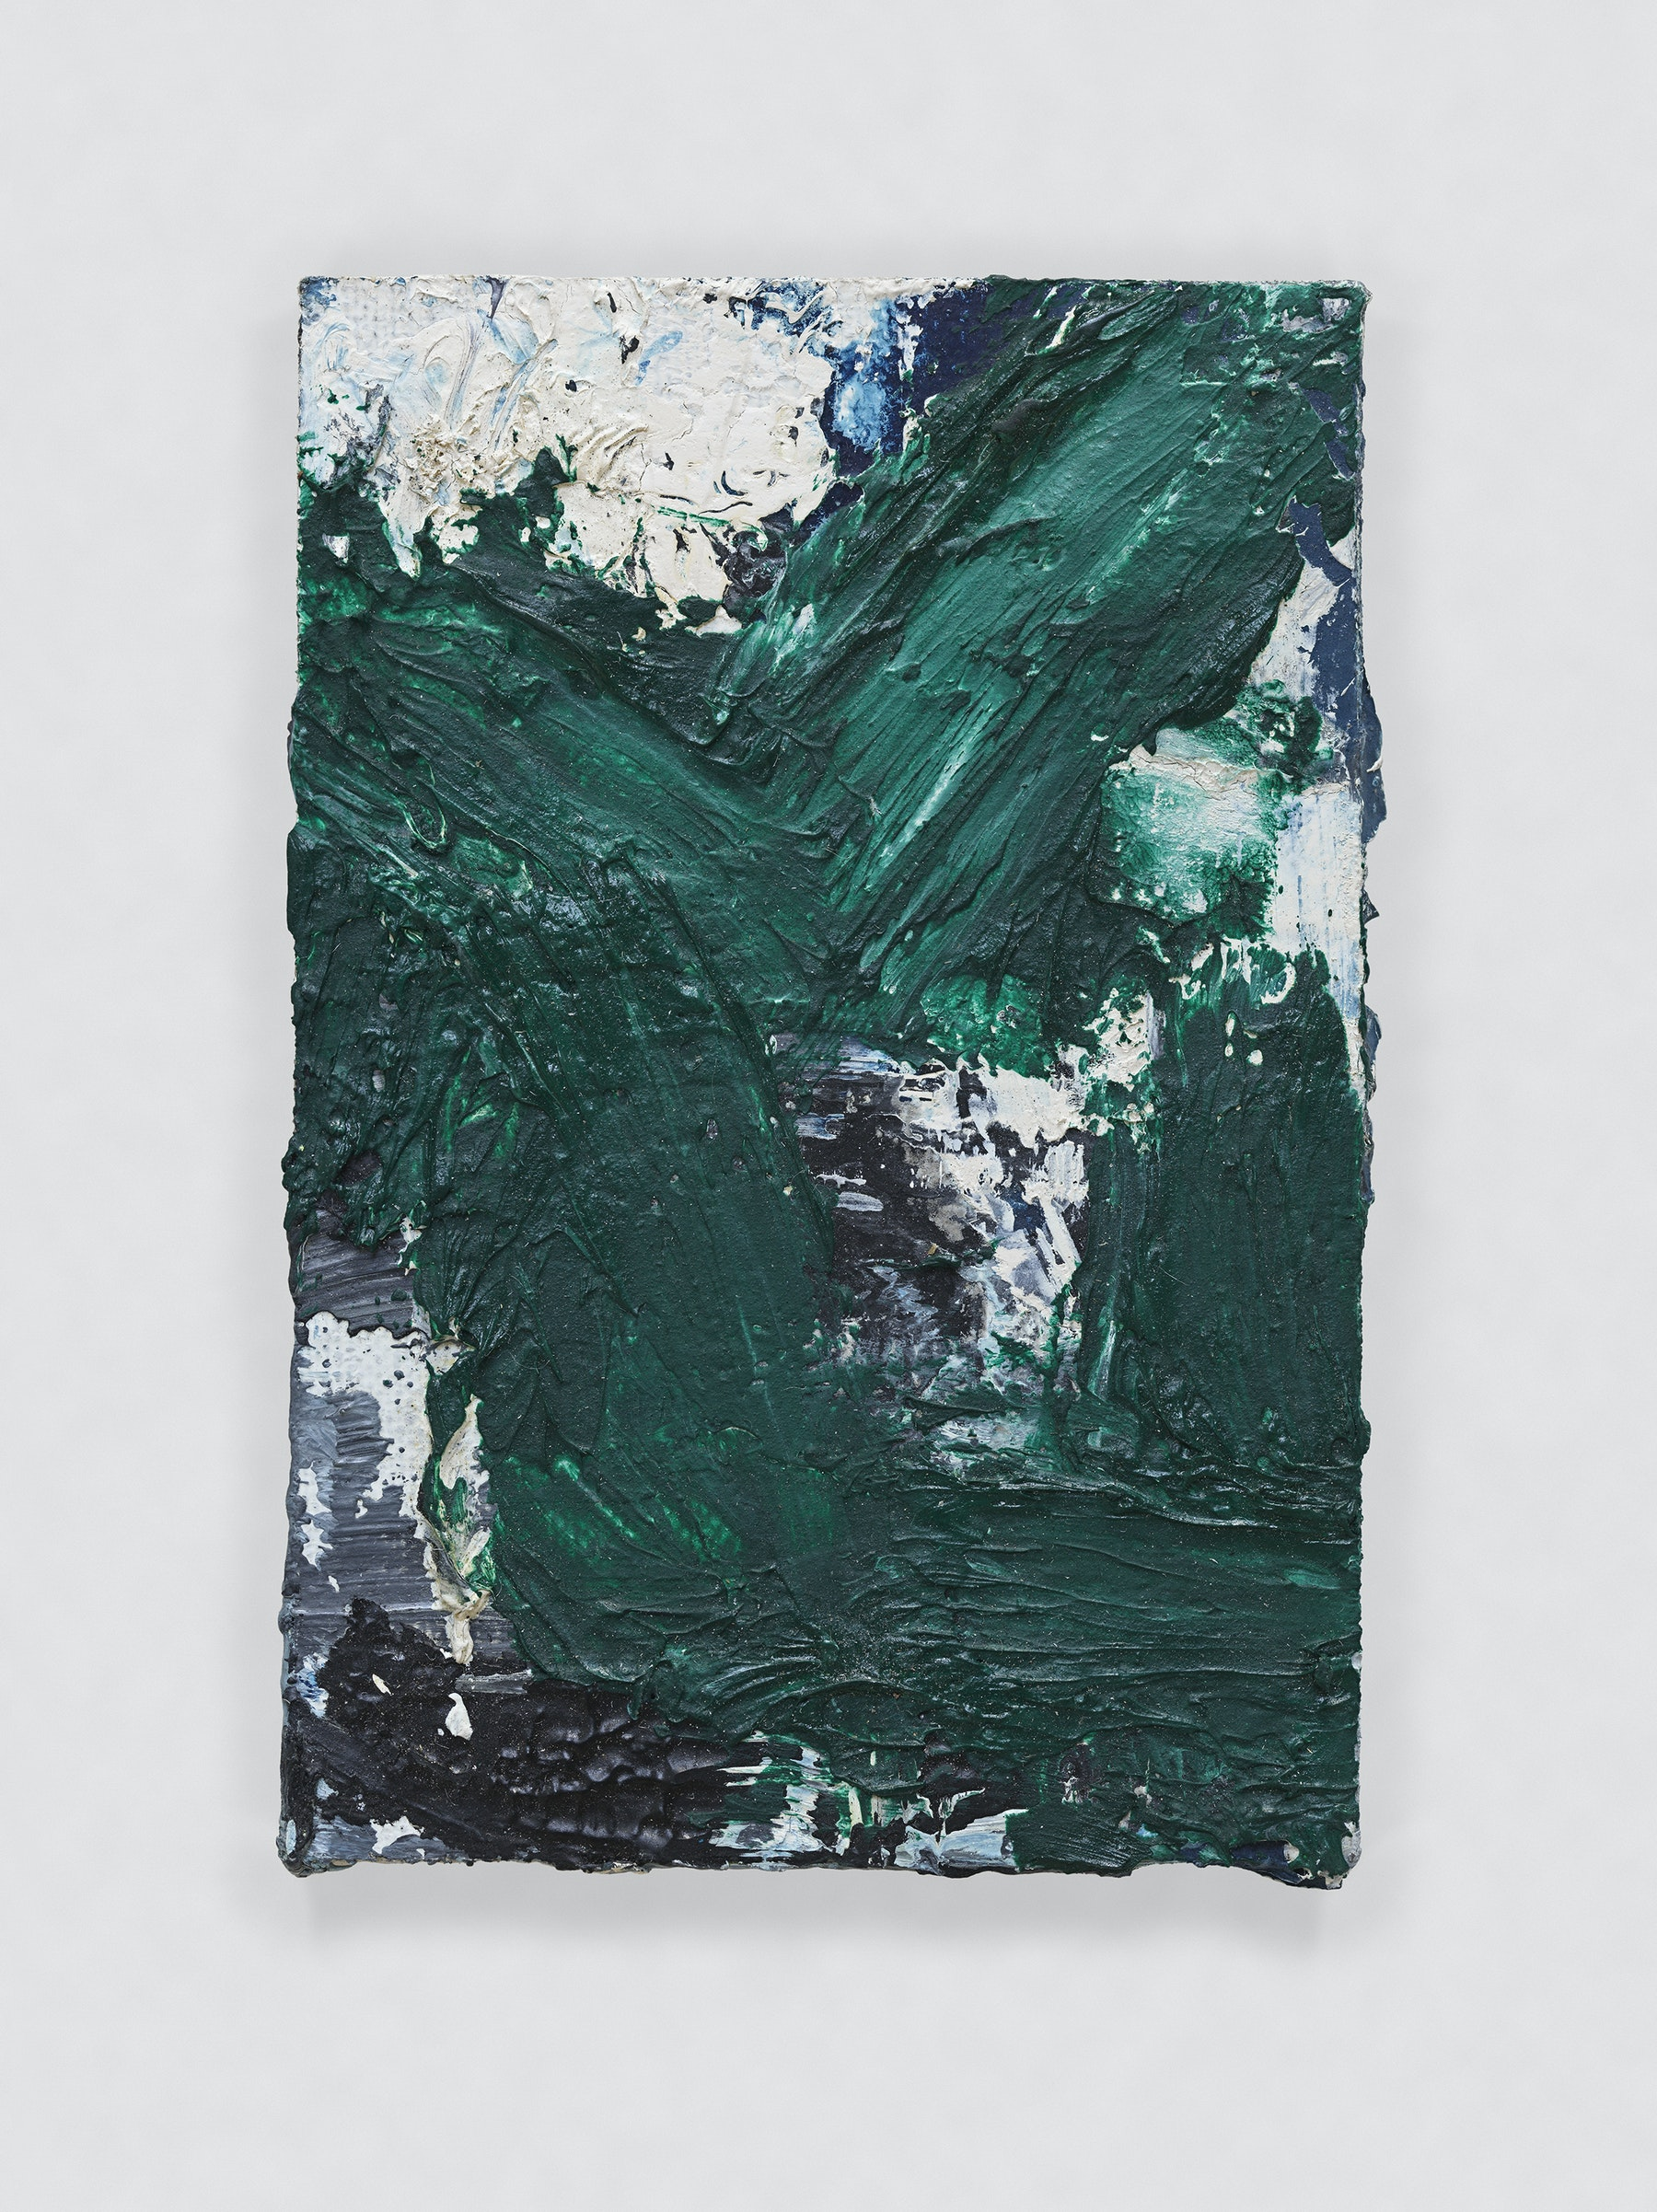 """Louise Fishman """"UNTITLED,"""" 2011 Oil on board 3 x 2"""" [HxW] (7.62 x 5.08 cm) Inventory #FIS137 Courtesy of the artist and Vielmetter Los Angeles Photo credit: Genevieve Hanson Signed and dated on verso"""